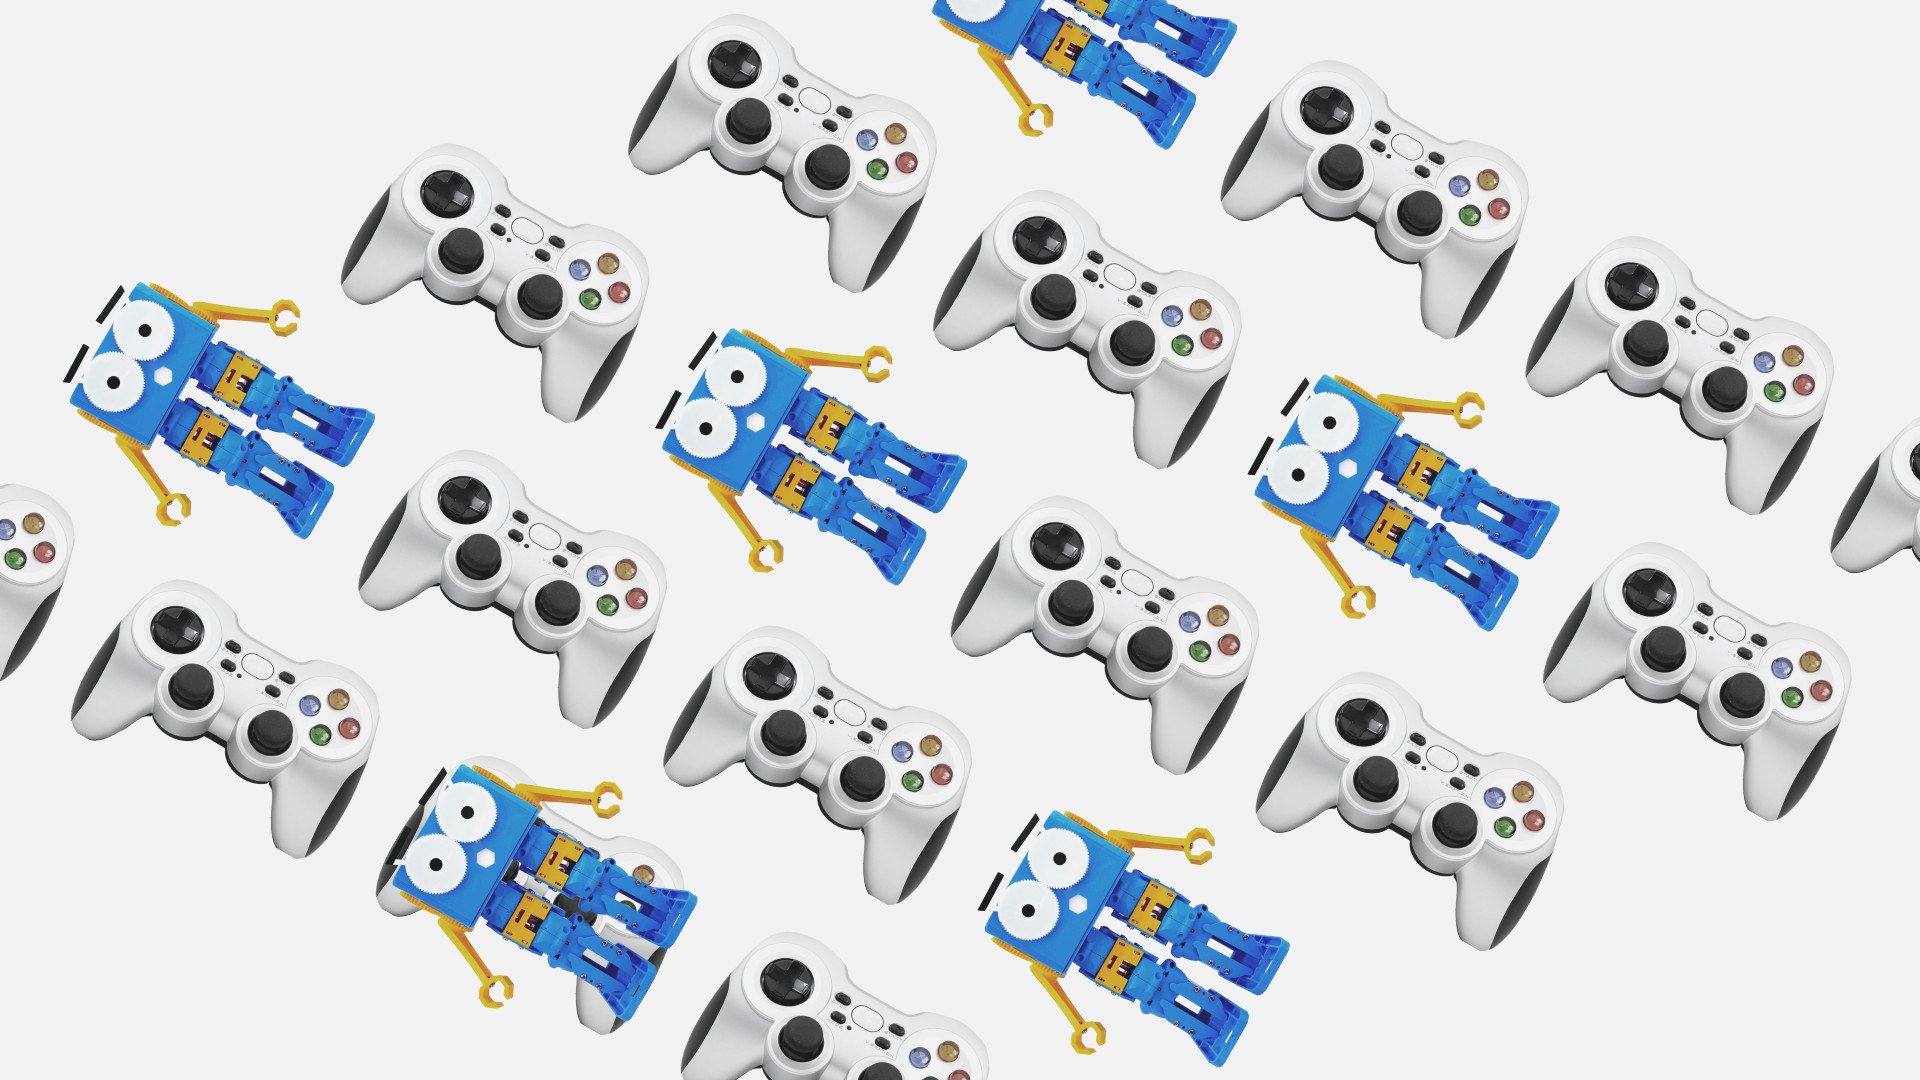 Control your Marty with a GamePad using Python – Marty the Robot